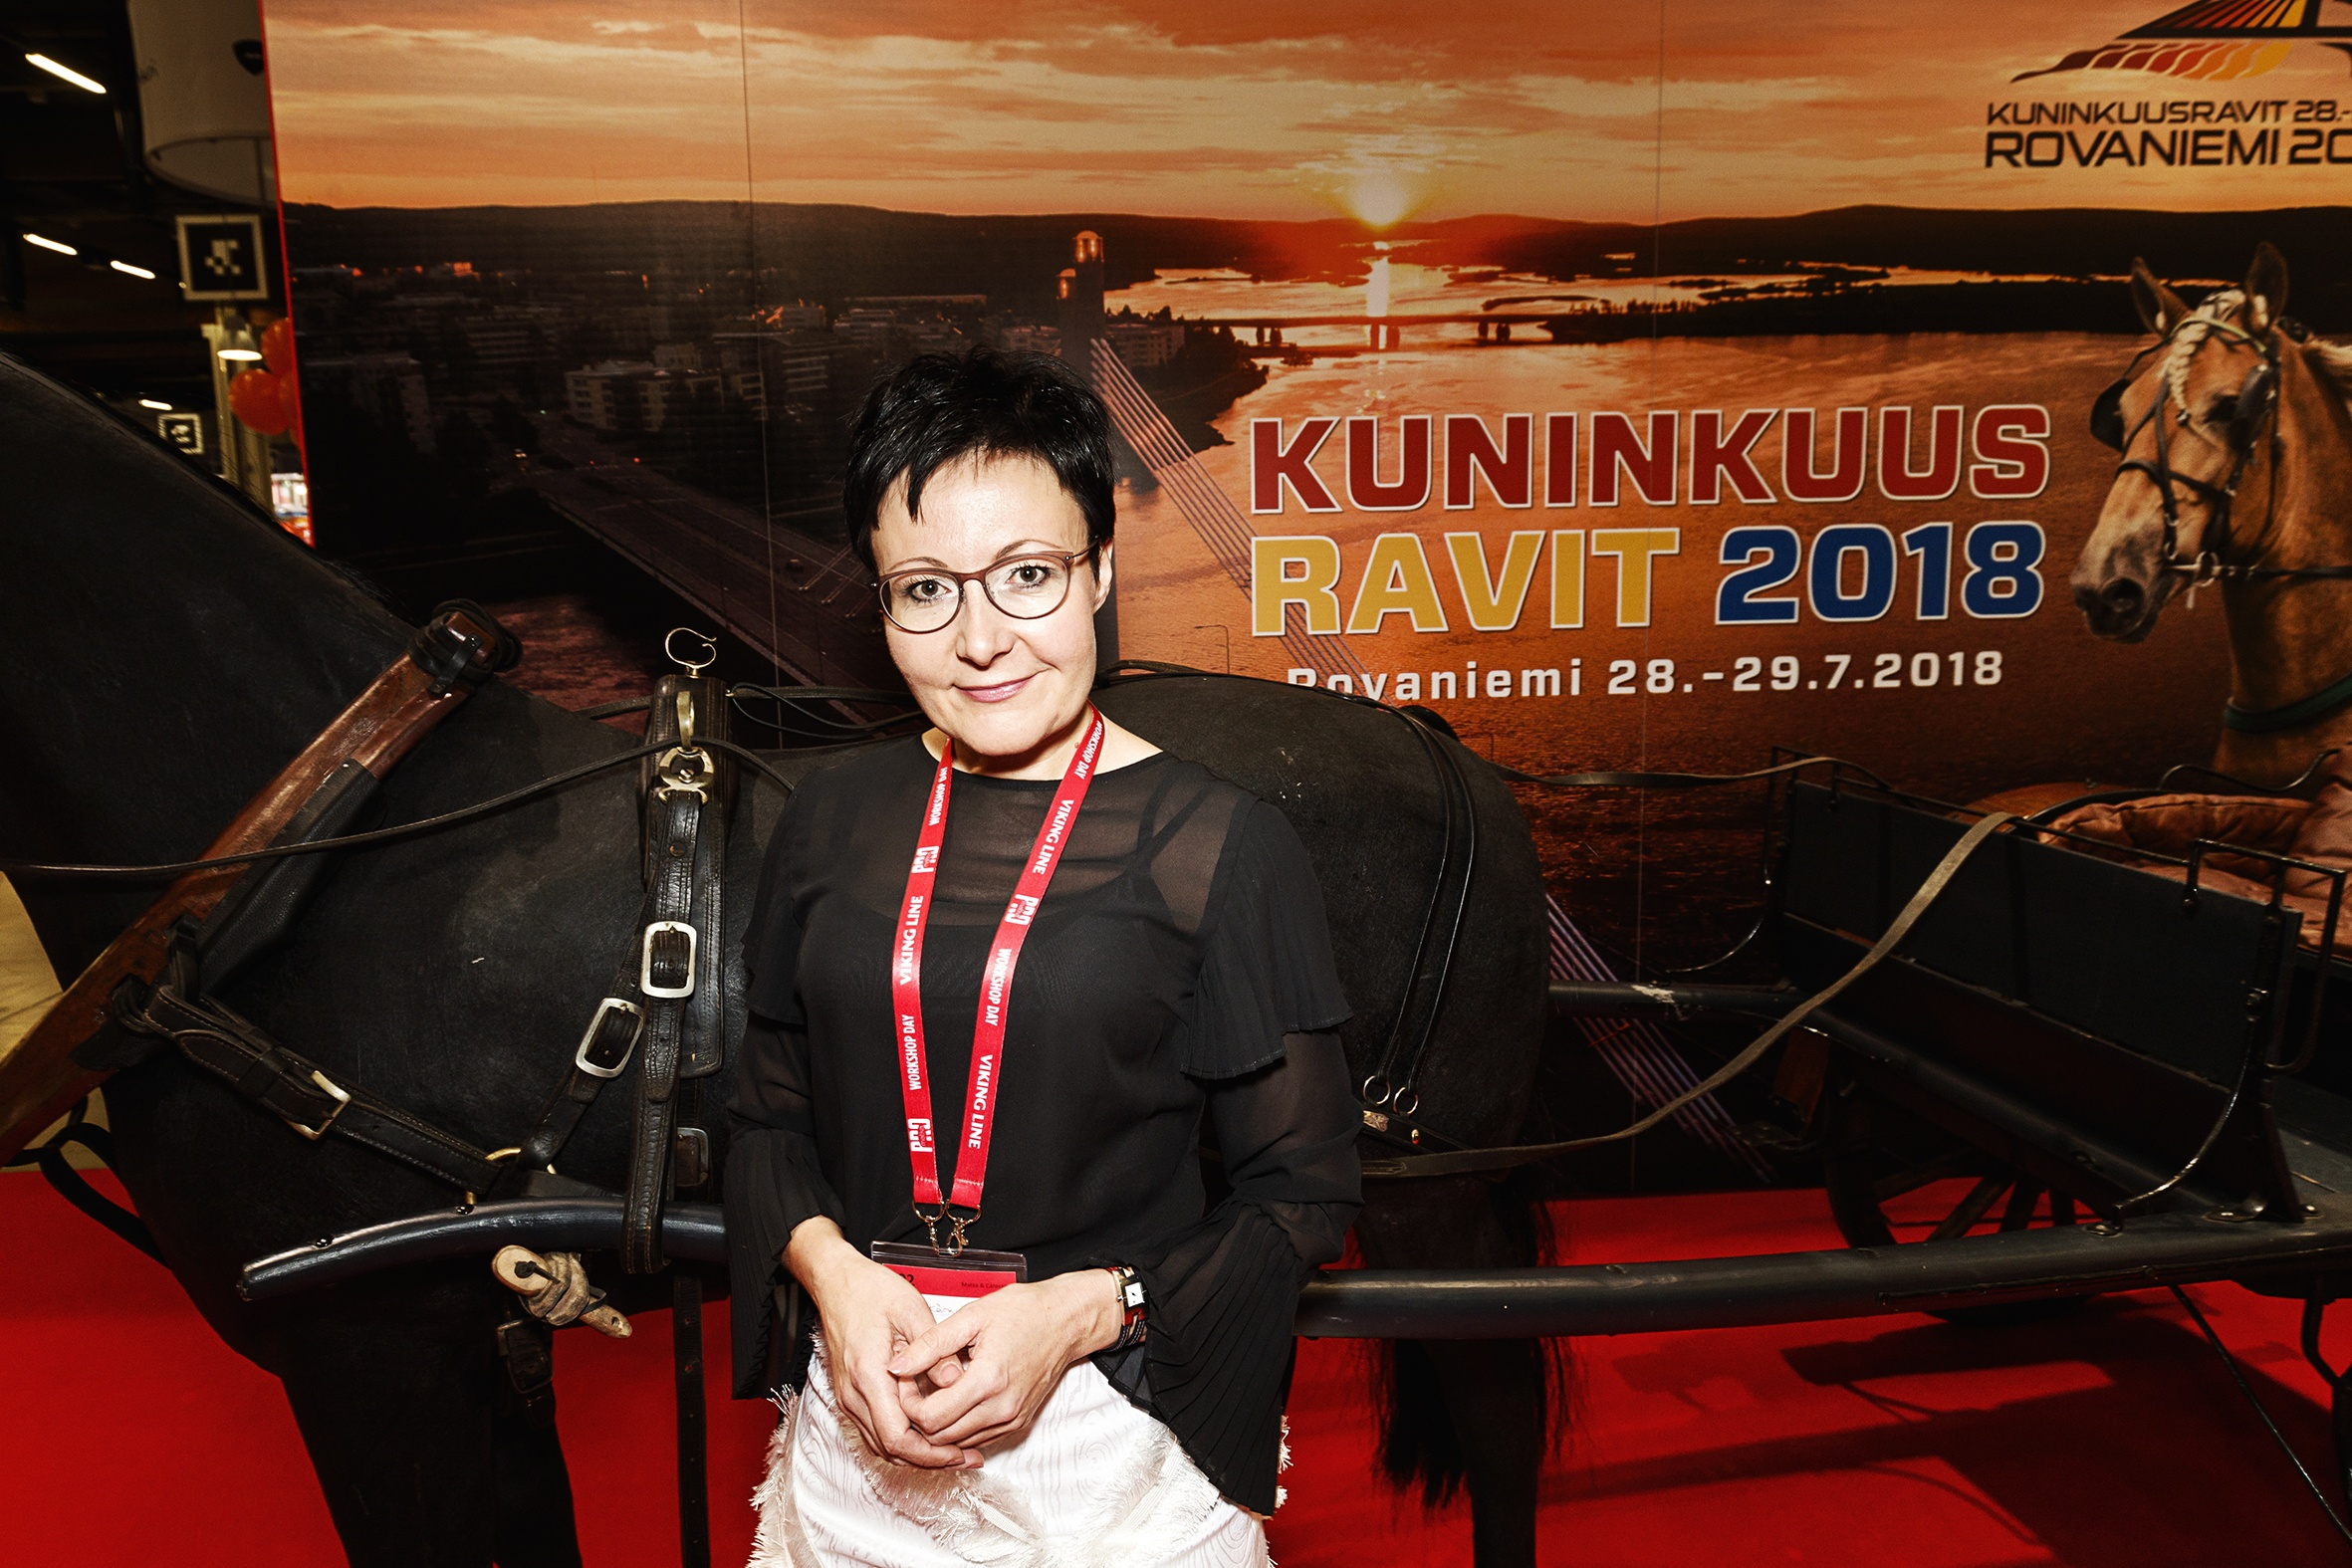 """Visit Rovaniemi's huge stand was crowded with local companies: in total, 40 entrepreneurs were represented. CEO Sanna Kärkkäinen takes pride in the investments local accommodation providers are making, as they form a big part of the region's attractiveness. This year, the Finnhorse Trotting Championship competition (Kuninkuusravit) will prove irresistible to many from the Nordics. """"The legendary event will definitely be an experience many will be keen to travel for."""""""